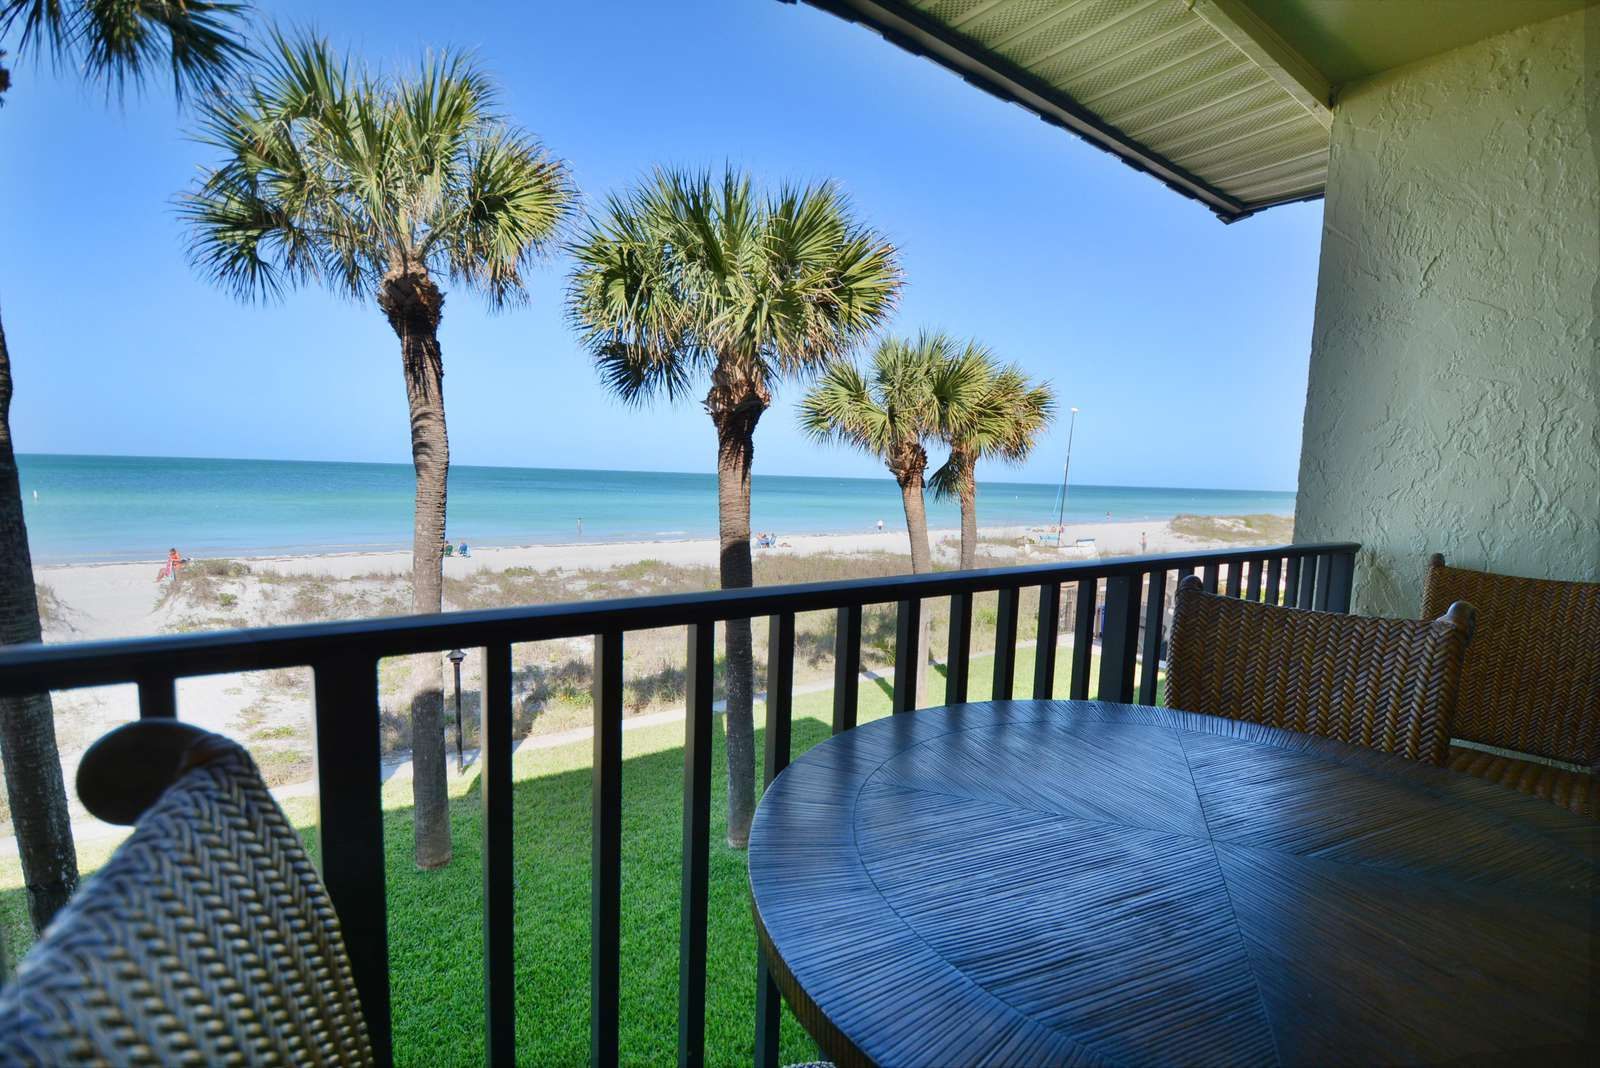 Balcony over the Gulf - property